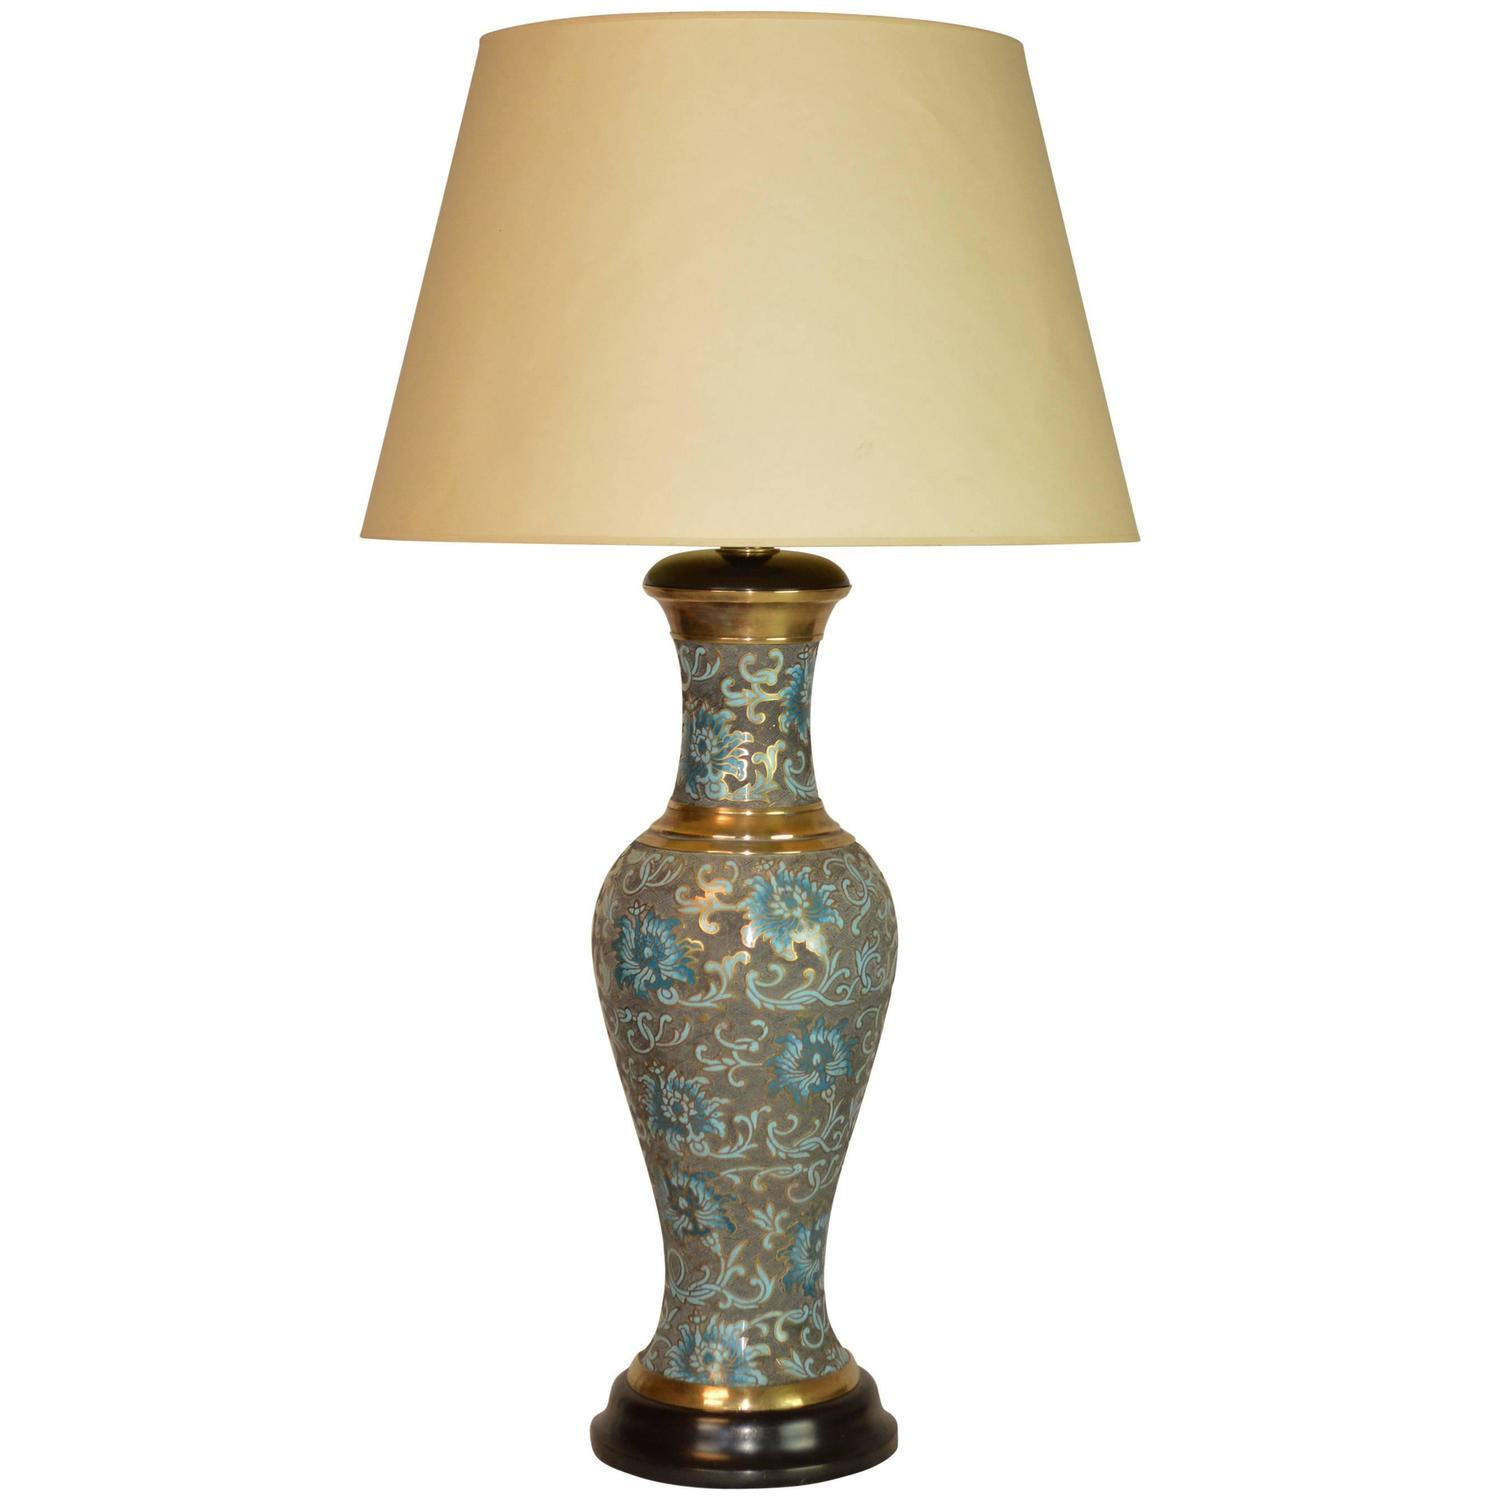 mid century modern cloisonn lamp at 1stdibs. Black Bedroom Furniture Sets. Home Design Ideas